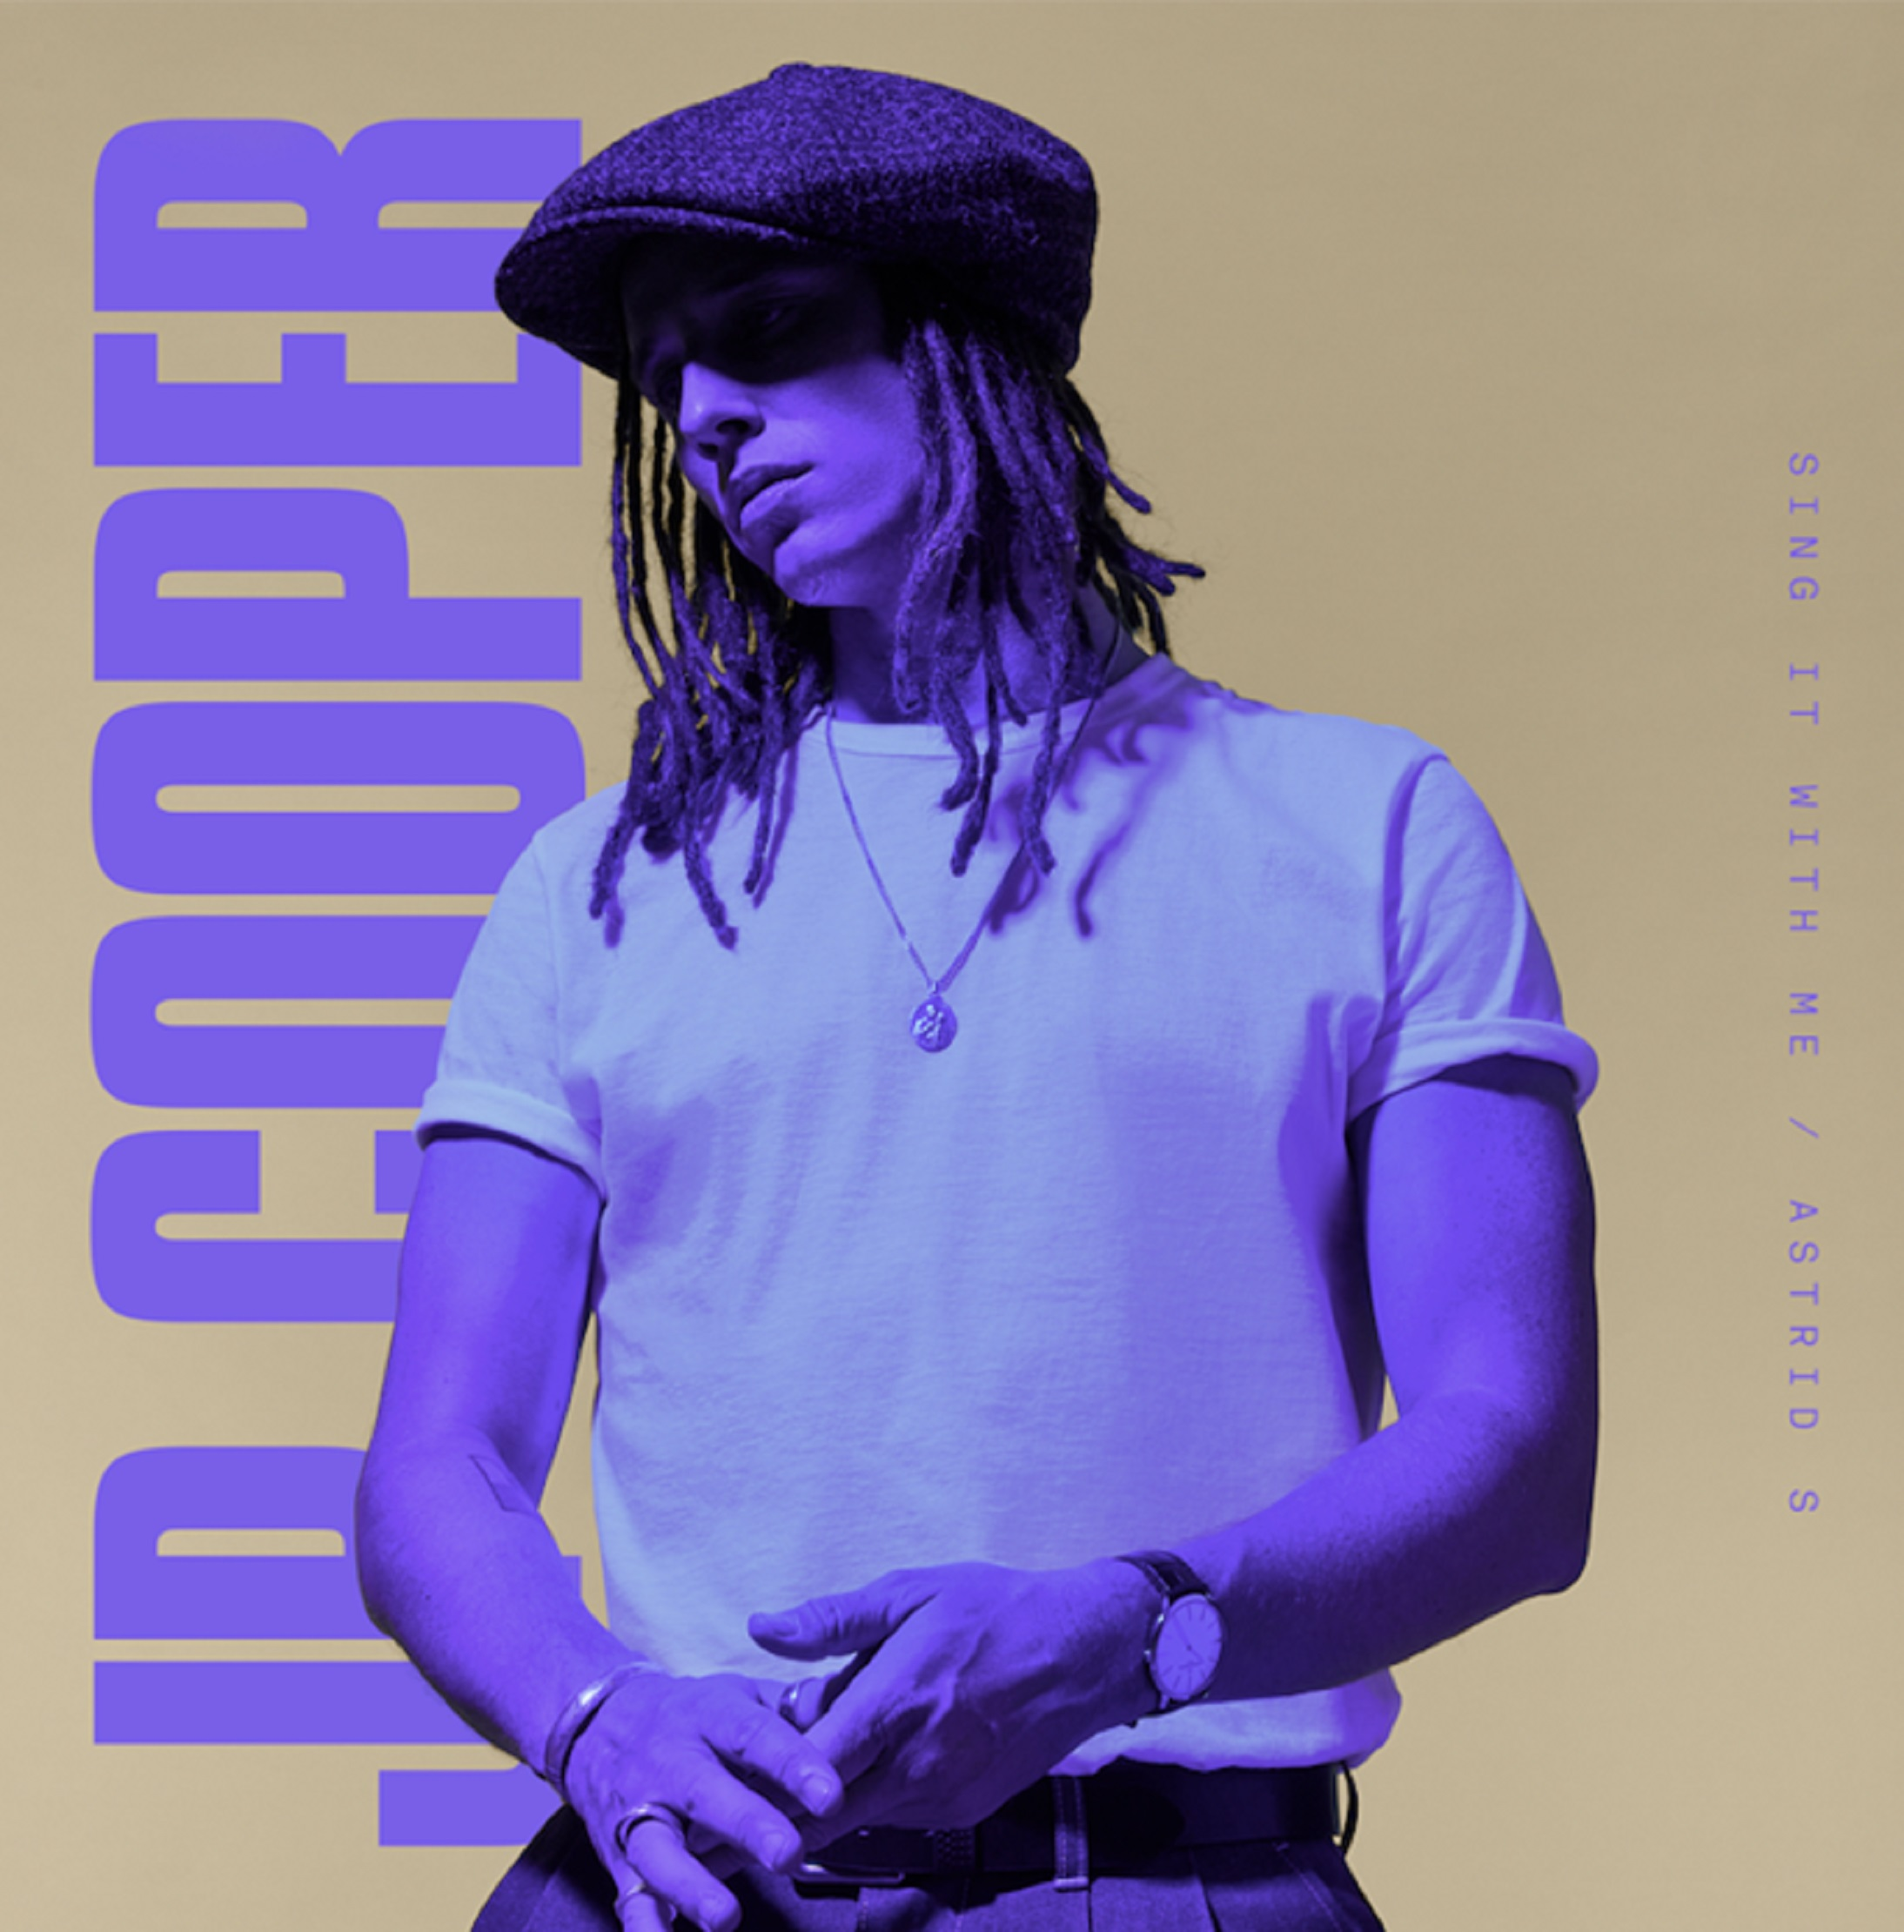 JP COOPER RELEASES ACOUSTIC VERSION OF NEW SINGLE 'SING IT WITH ME' FT. ASTRID S